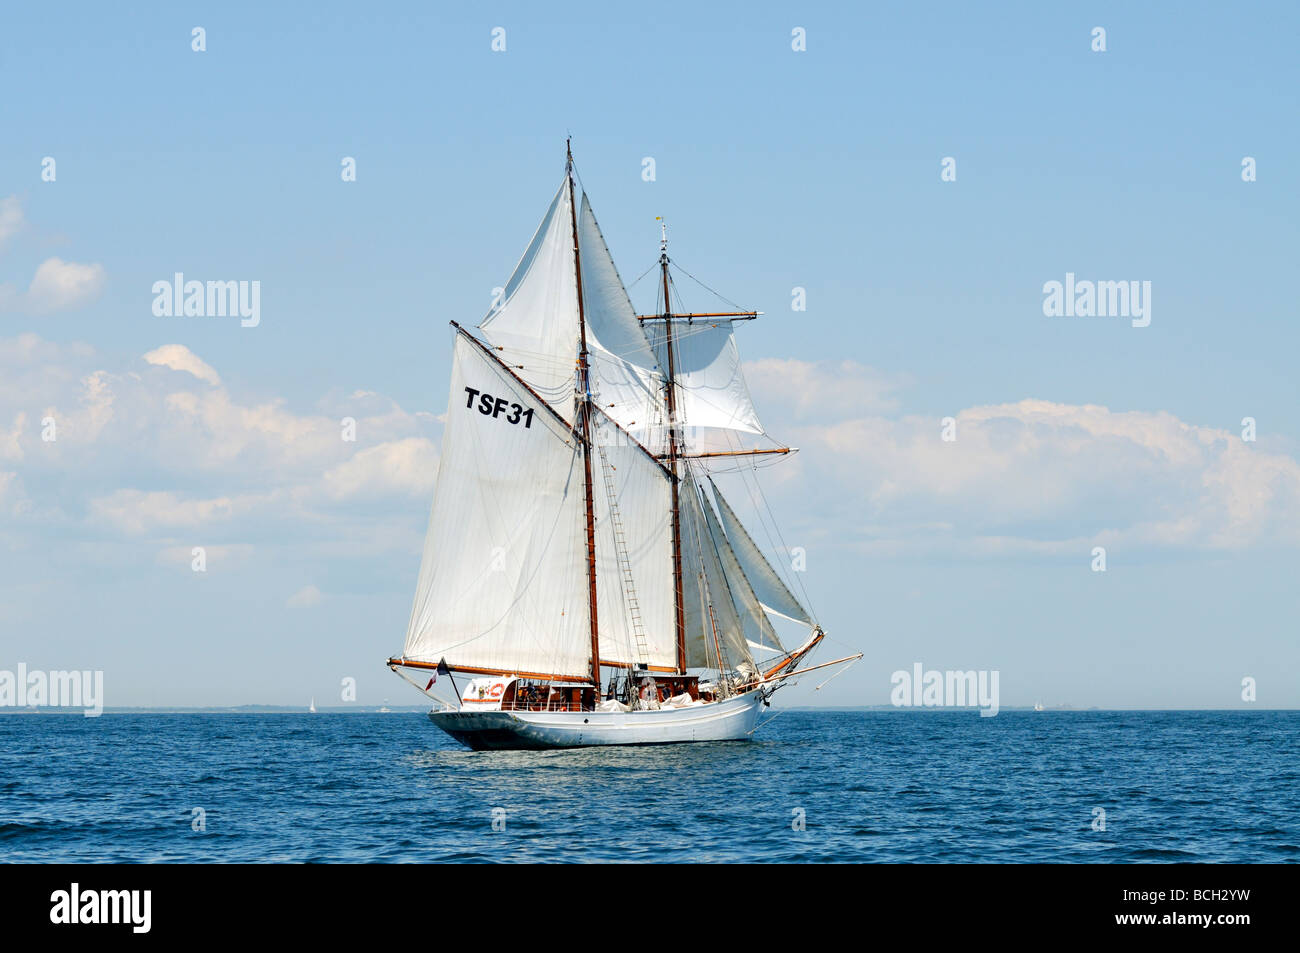 French tall ship L Etoile a gaff rigged schooner under full sail - Stock Image